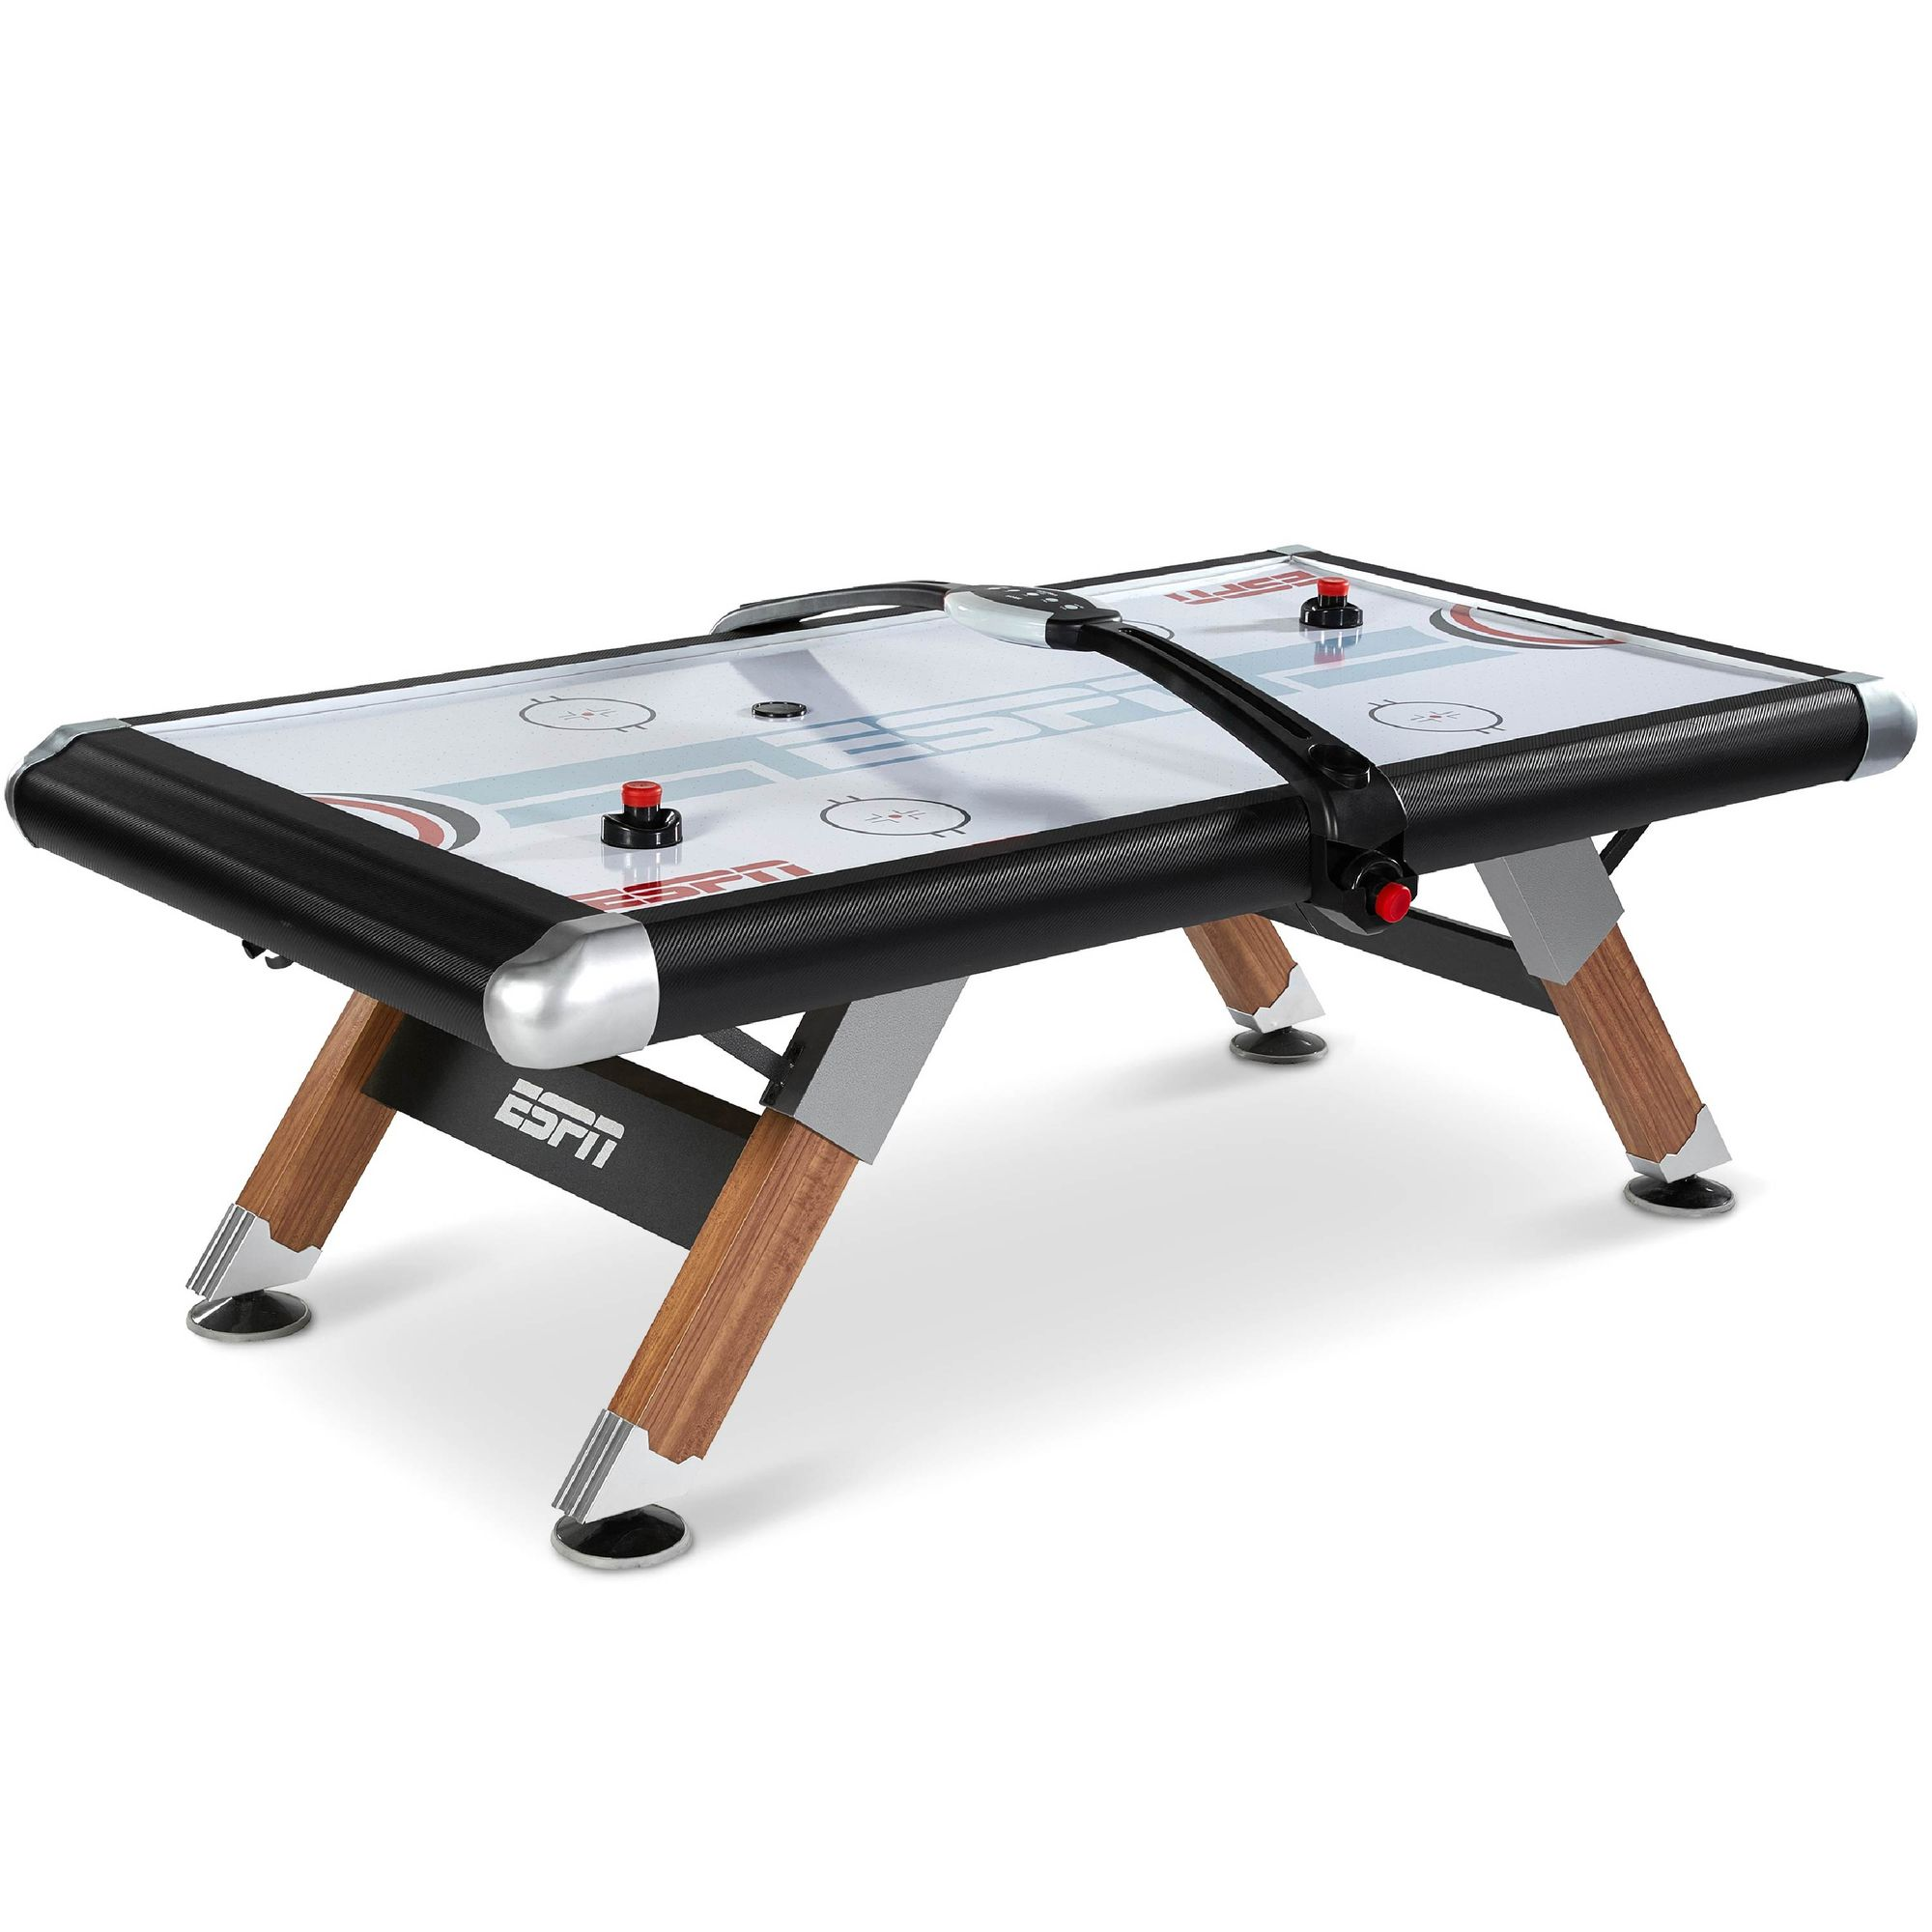 ESPN Belham Collection 8 Ft. Air Powered Hockey Table with Overhead Electronic Scorer and Table Cover, Black